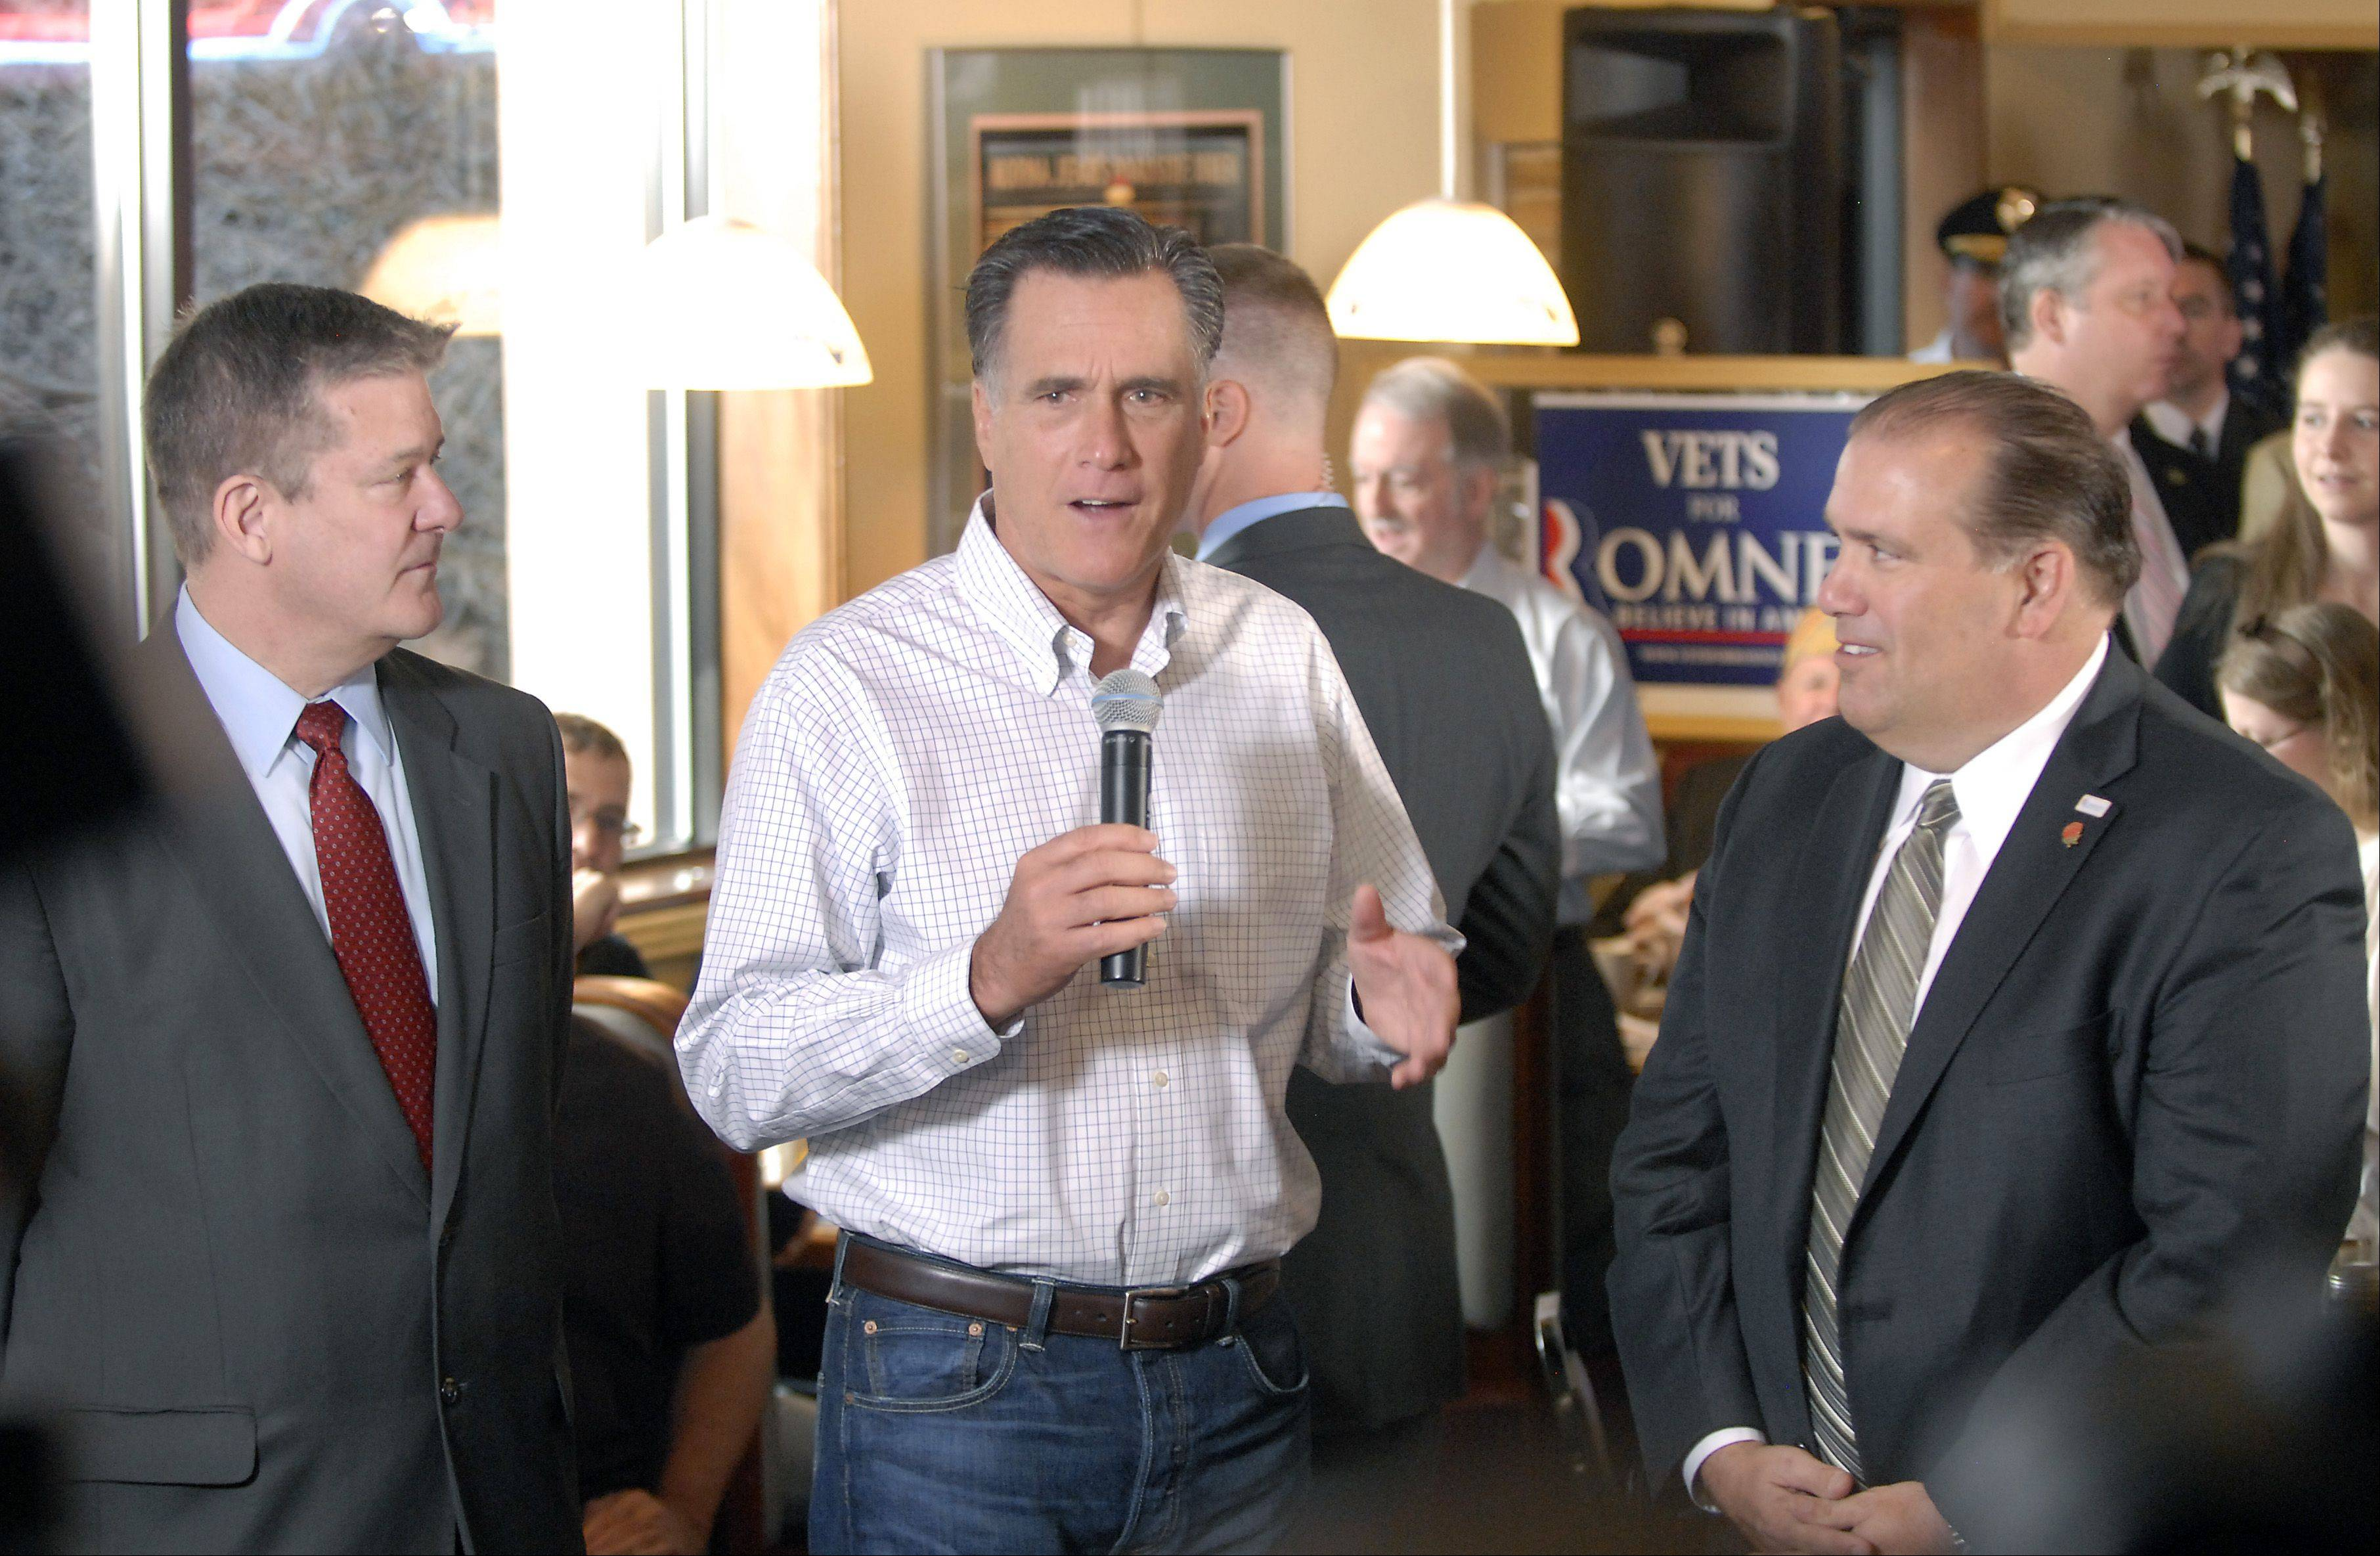 Republican Presidential candidate Mitt Romney, center, is joined by Illinois State Treasurer Dan Rutherford, left, and Rosemont Mayor Bradley Stevens early Friday morning at a restaurant in Rosemont.